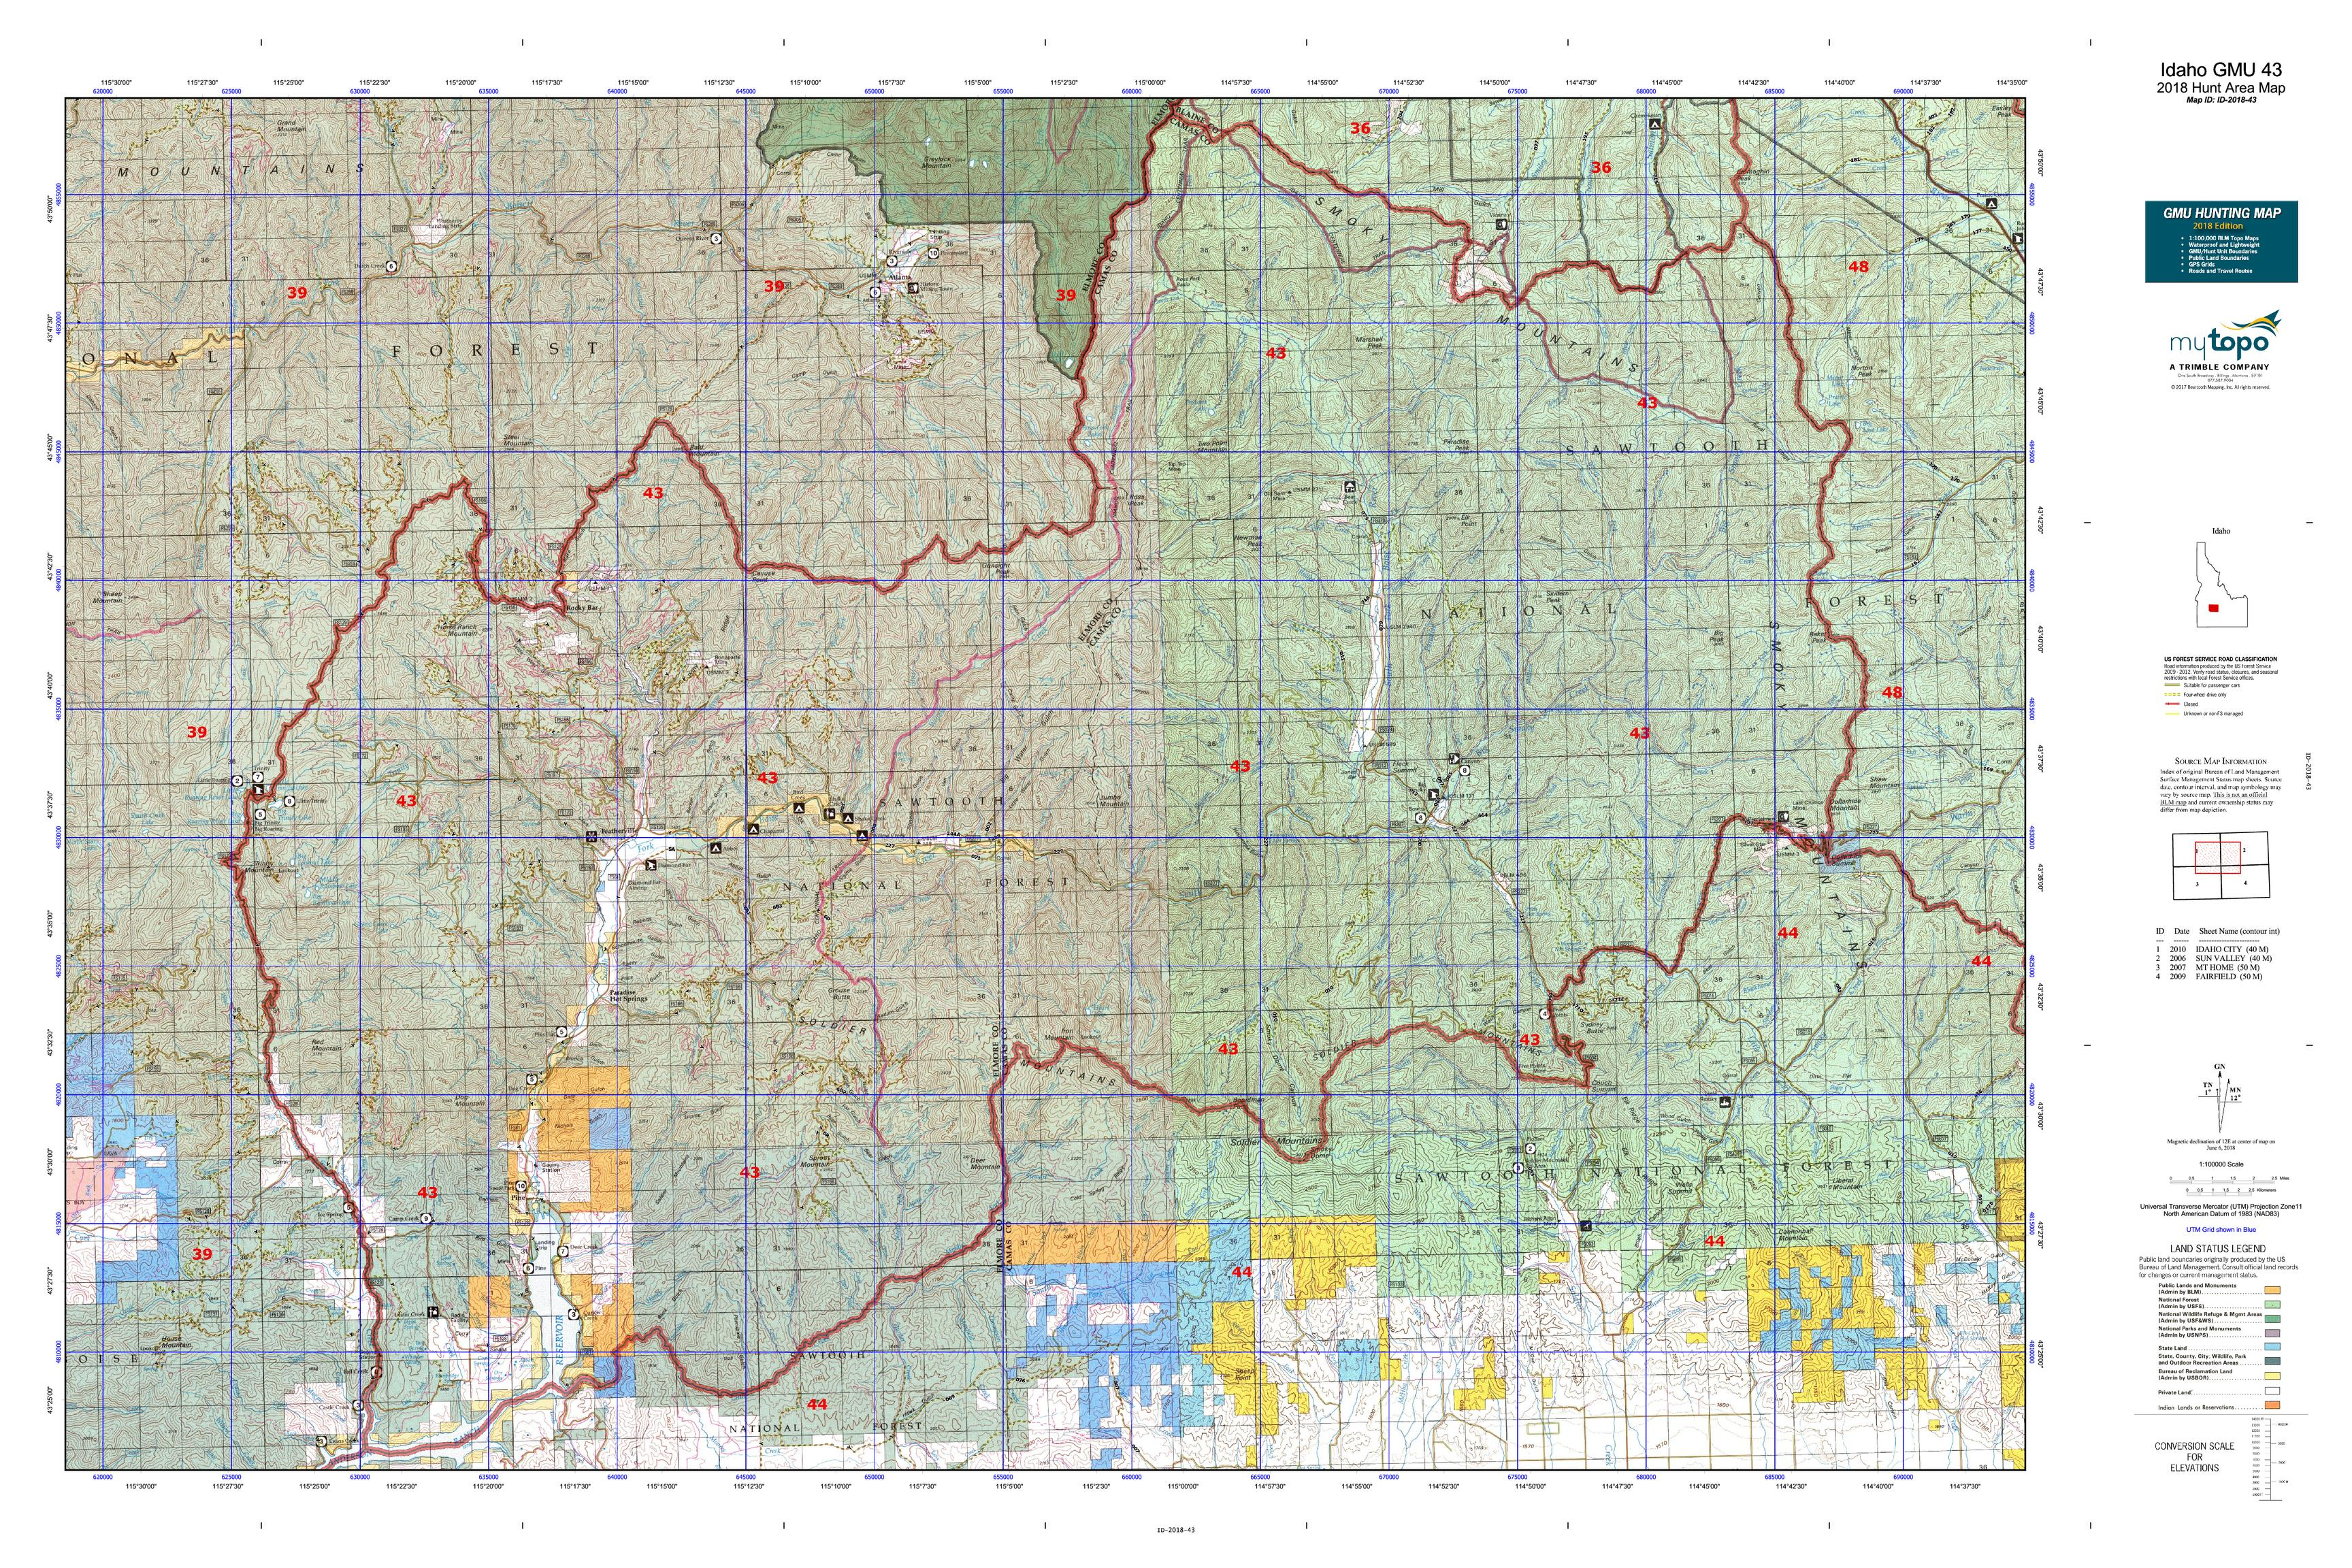 Idaho GMU 43 Map | MyTopo on nh us map, nc us map, state us map, name us map, time us map, ne us map, iq us map, or us map, lv us map, split us map, ks us map, se us map, pacific northwest region us map, wi us map, wv us map, va us map, ny us map, az us map, ma us map,